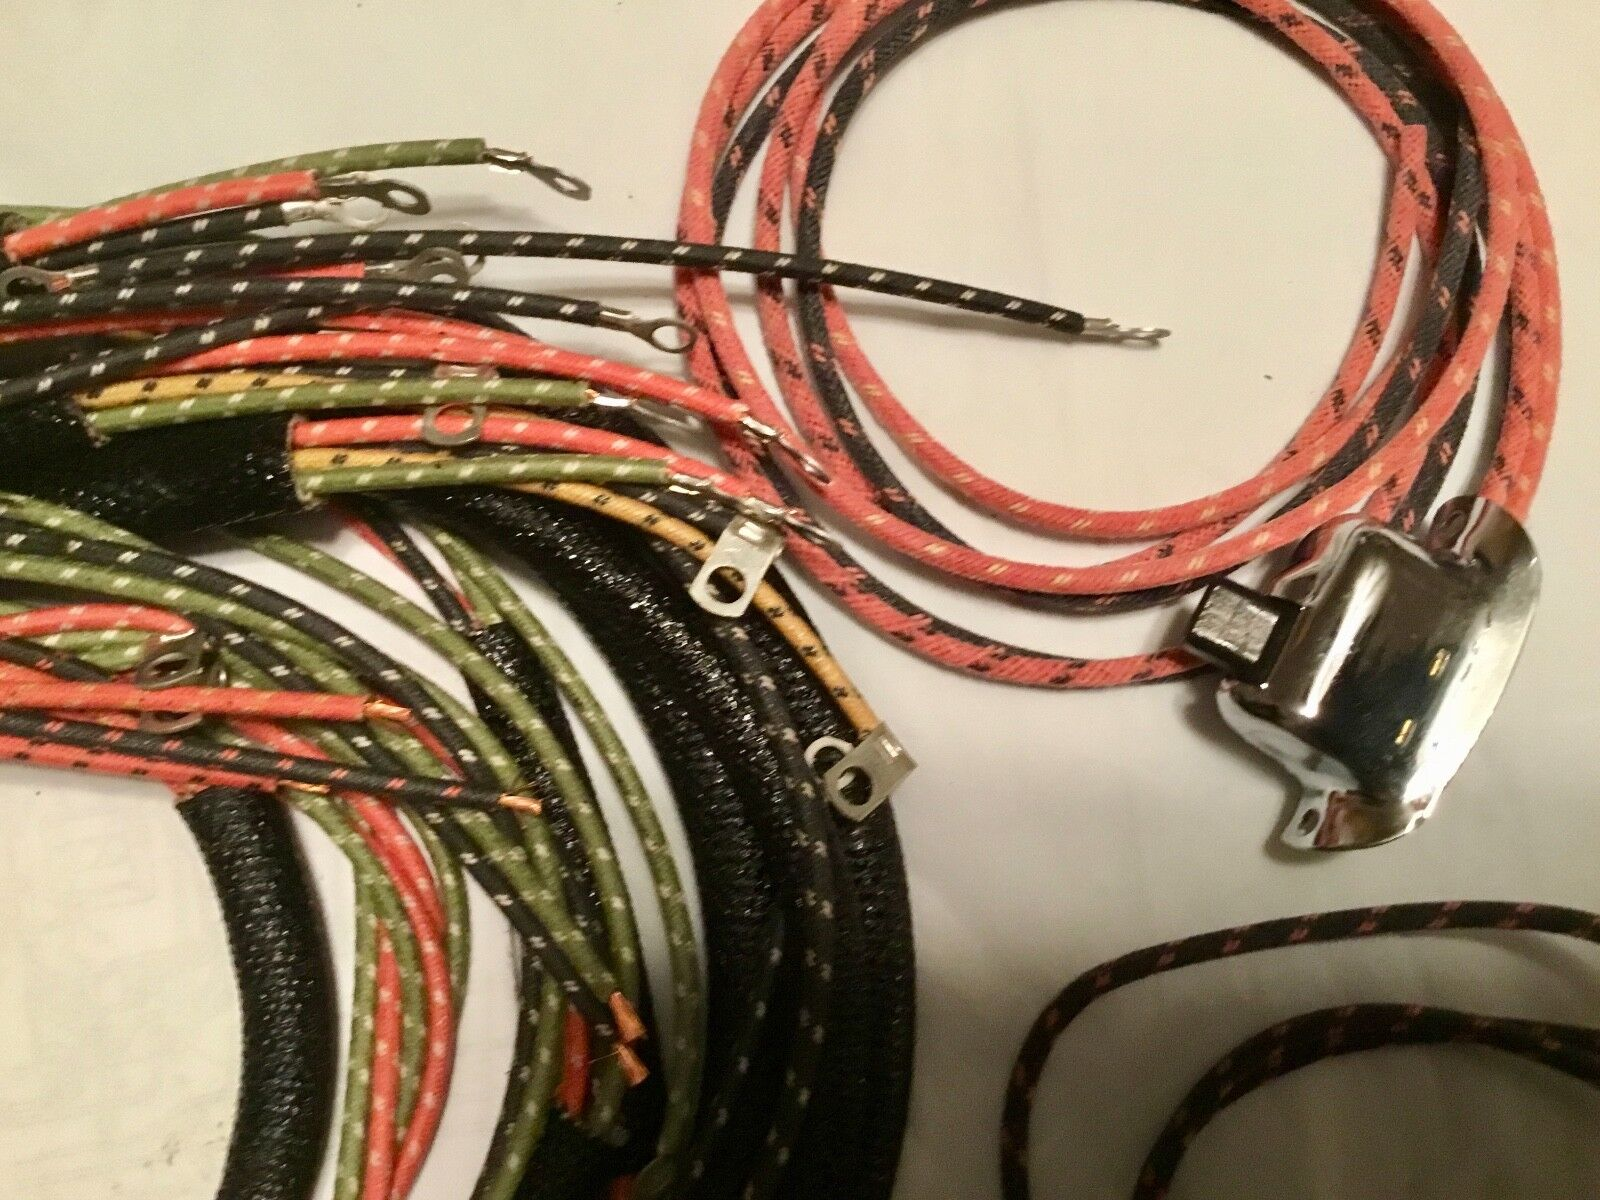 Harley 70321 48 Complete Panhead 1949 57 Wiring Harness W Wired Main 7032148 194957 Switches Usa